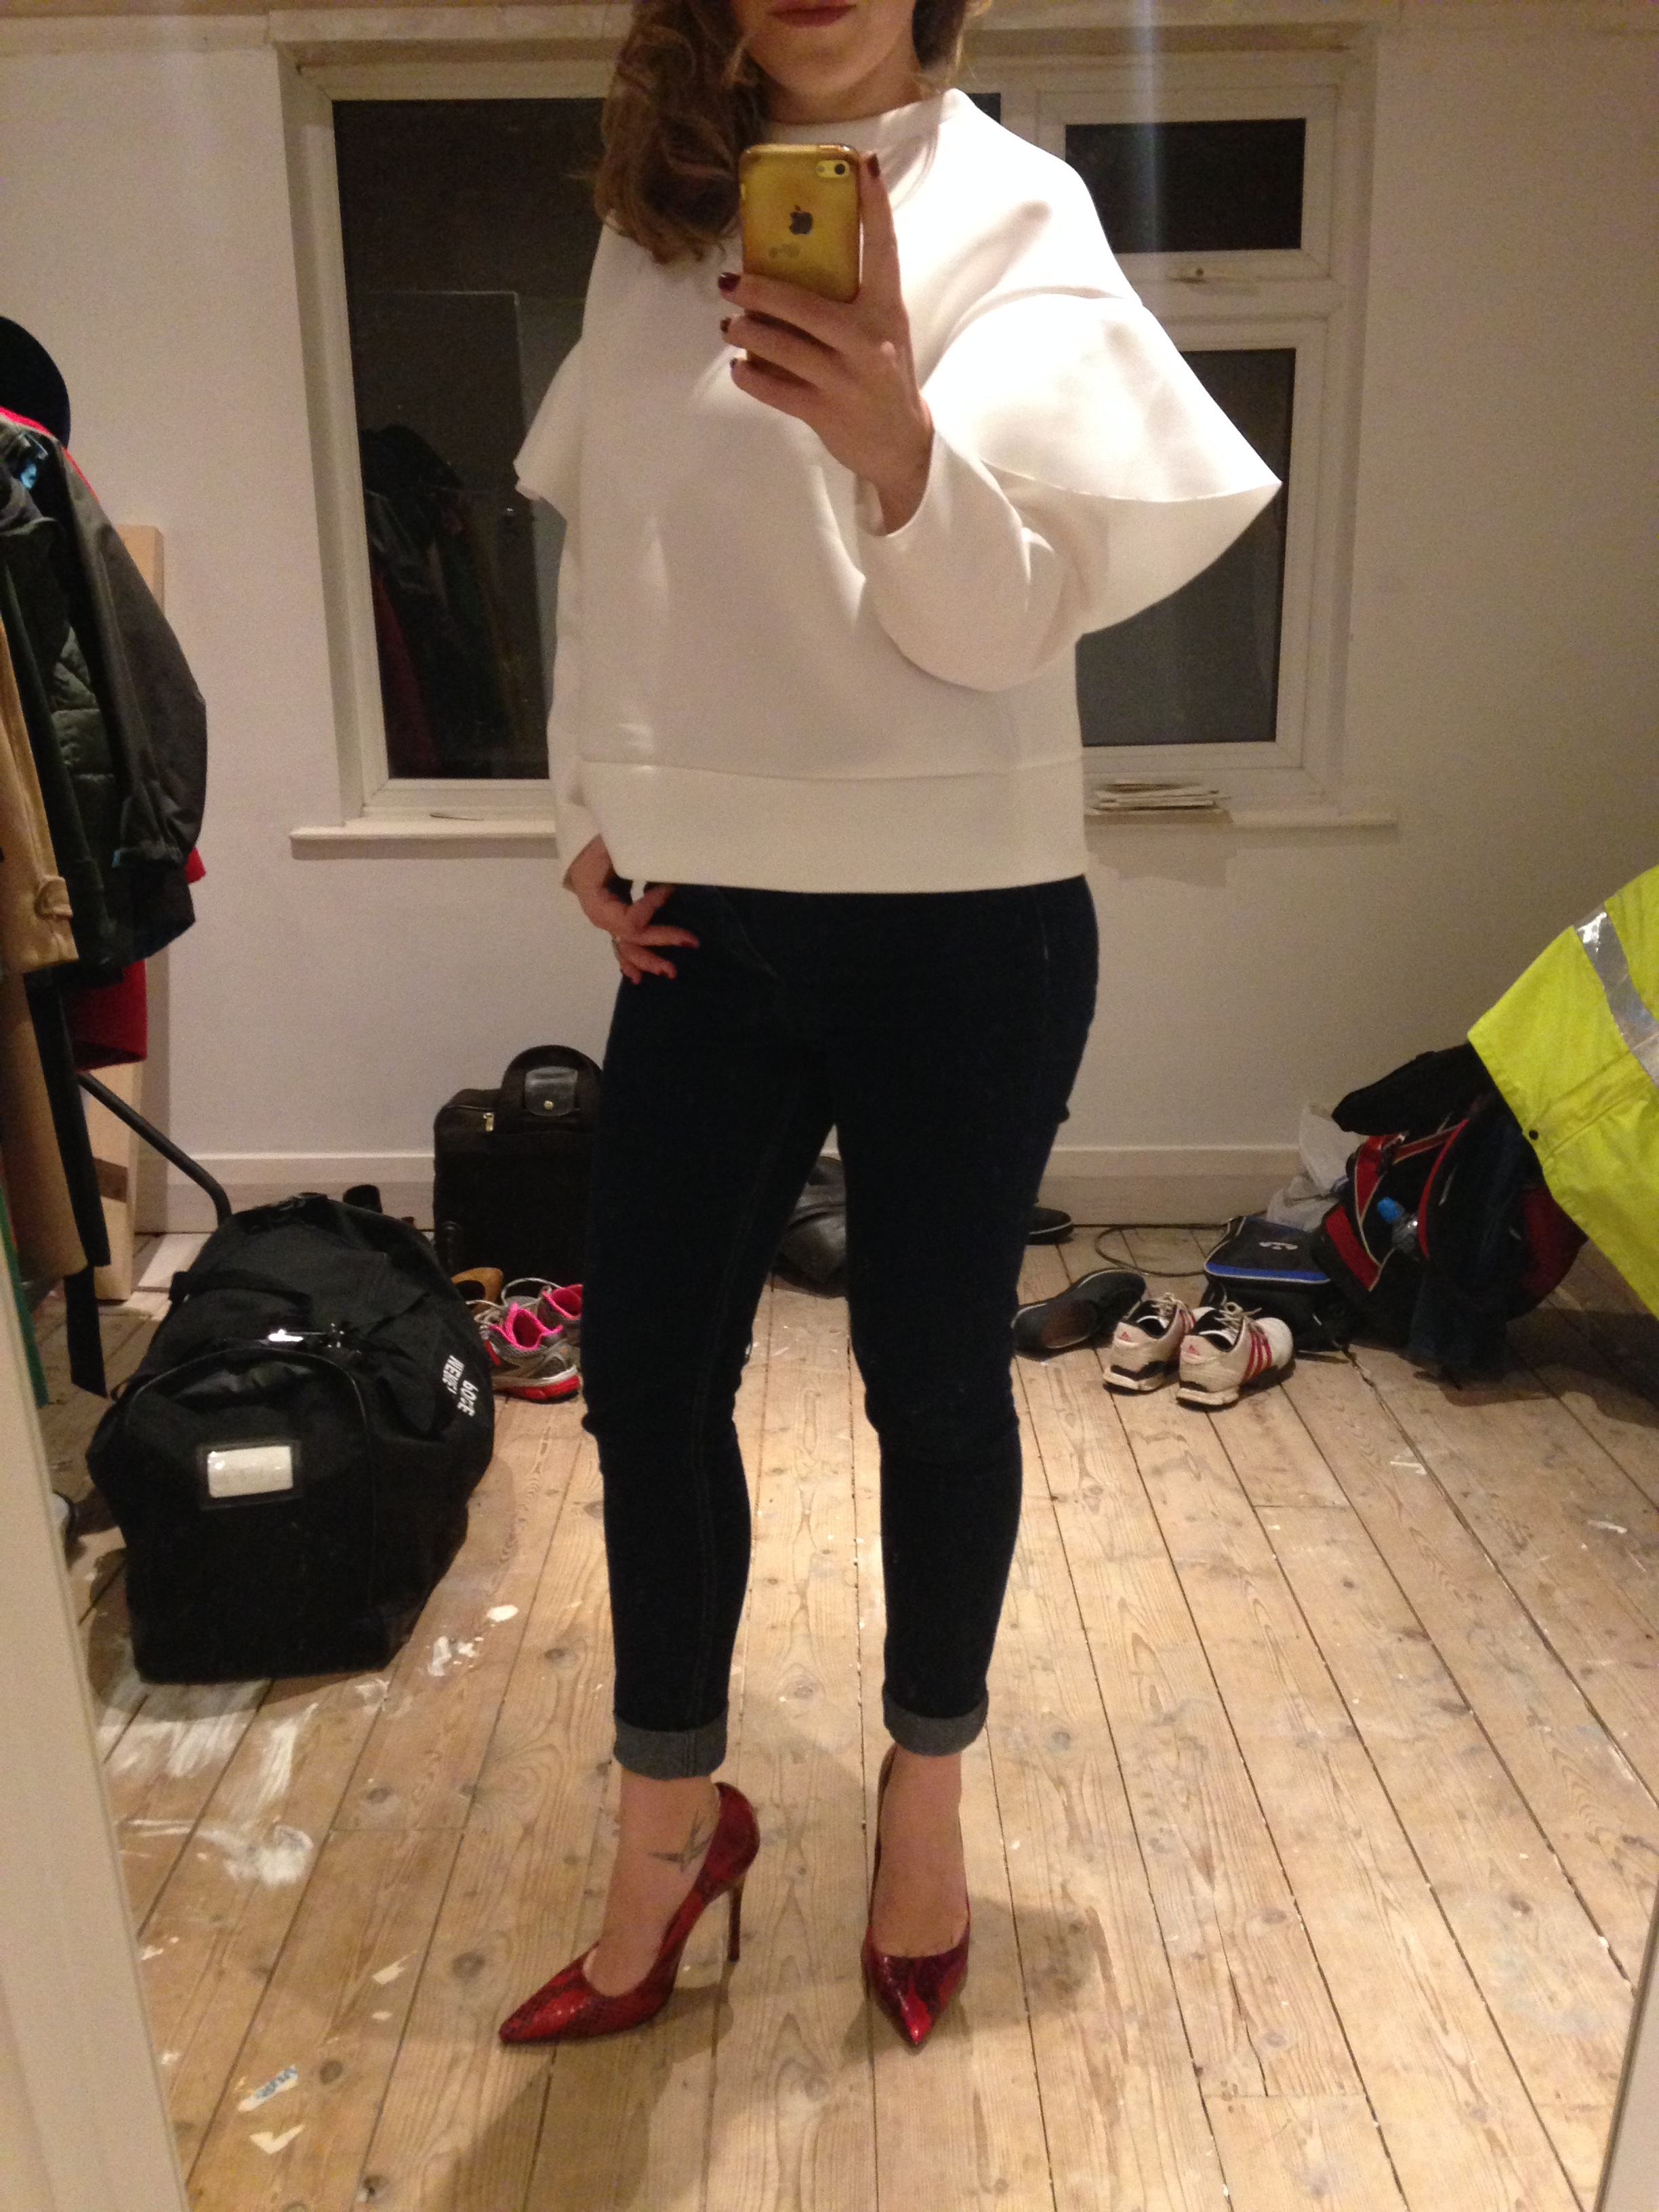 H&M High Waisted Skinnies. Teamed with a top from Boohoo and Topshop heels. Please ignore the state of our back bedroom! Our house is a mega work in progress!